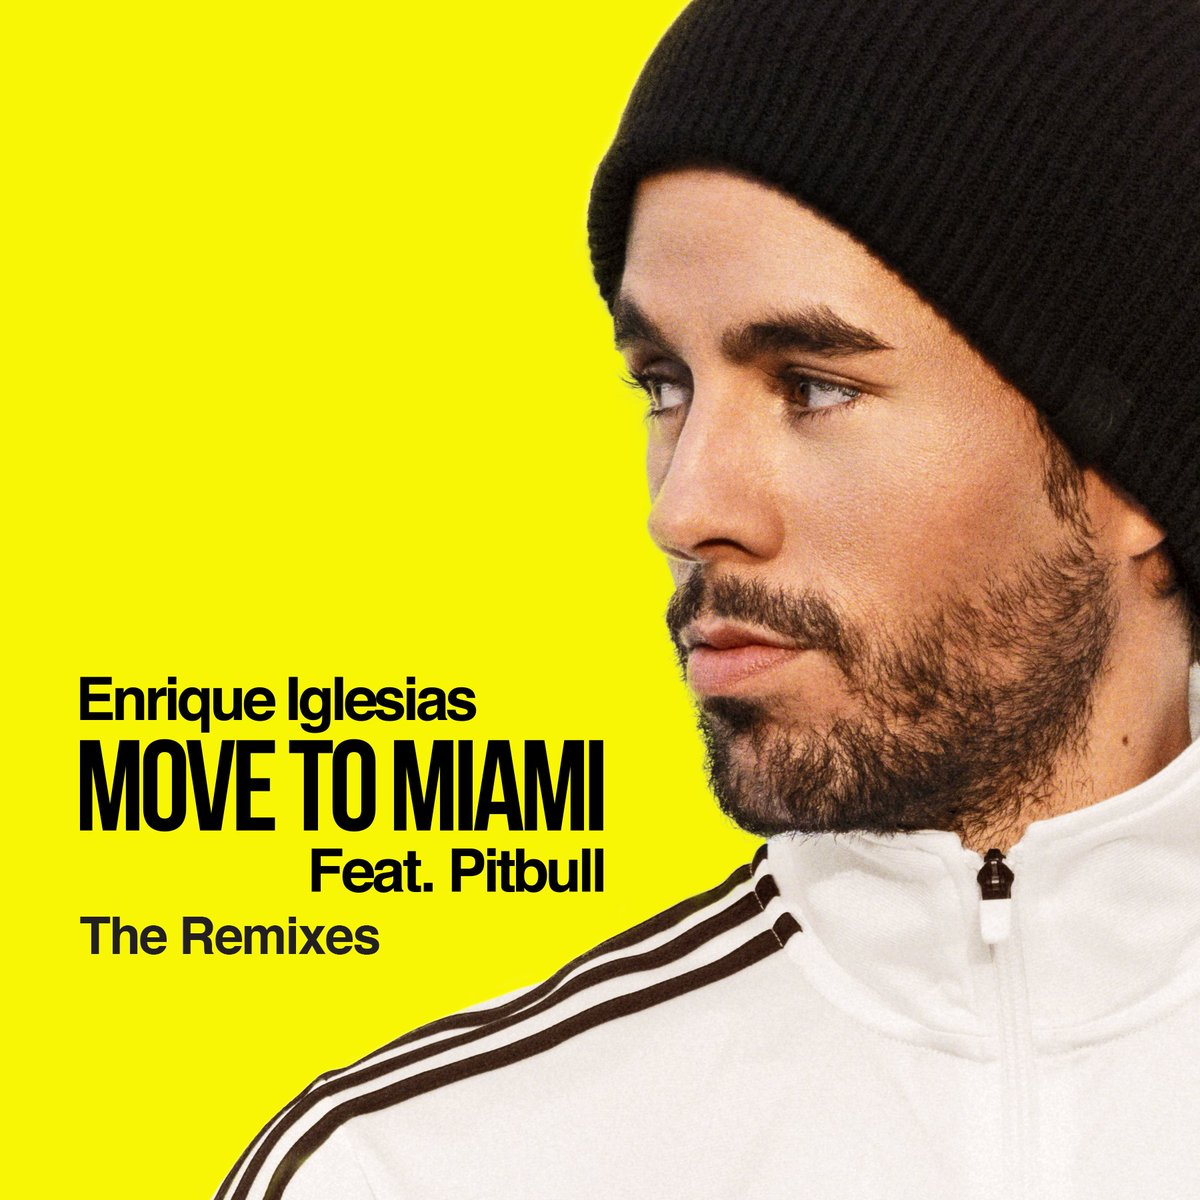 Have you heard the #MOVETOMIAMI remixes yet? Listen here: https://t.co/UmPiNvu8AJ https://t.co/jwNeEfCWxm